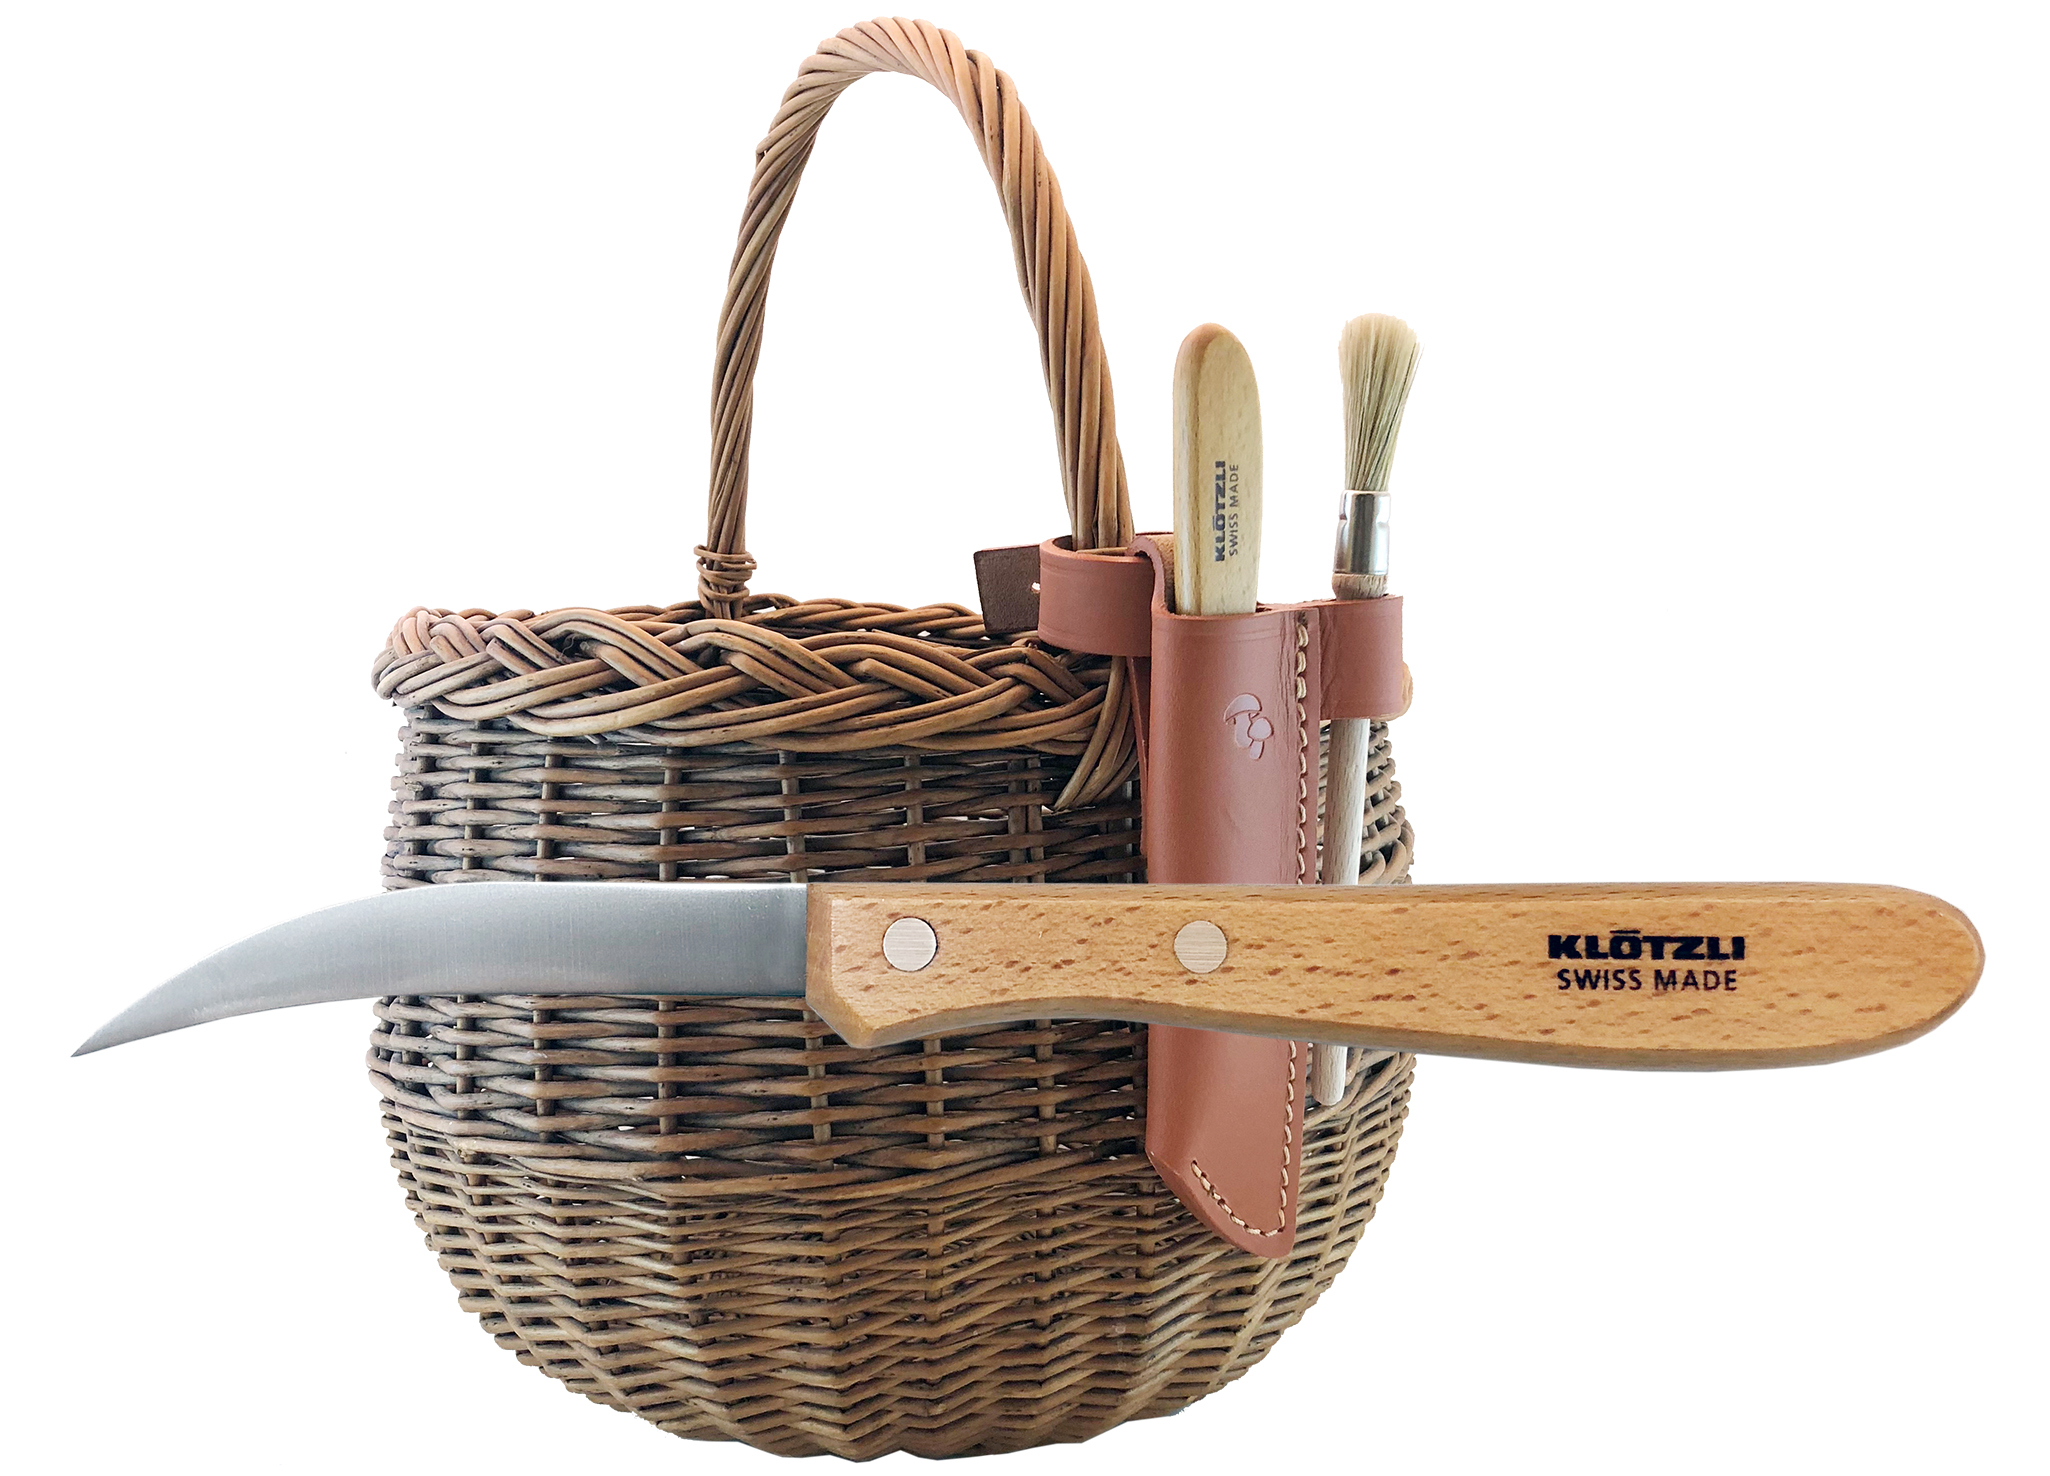 Klötzli Mushroom Basket Knife, made in Switzerland